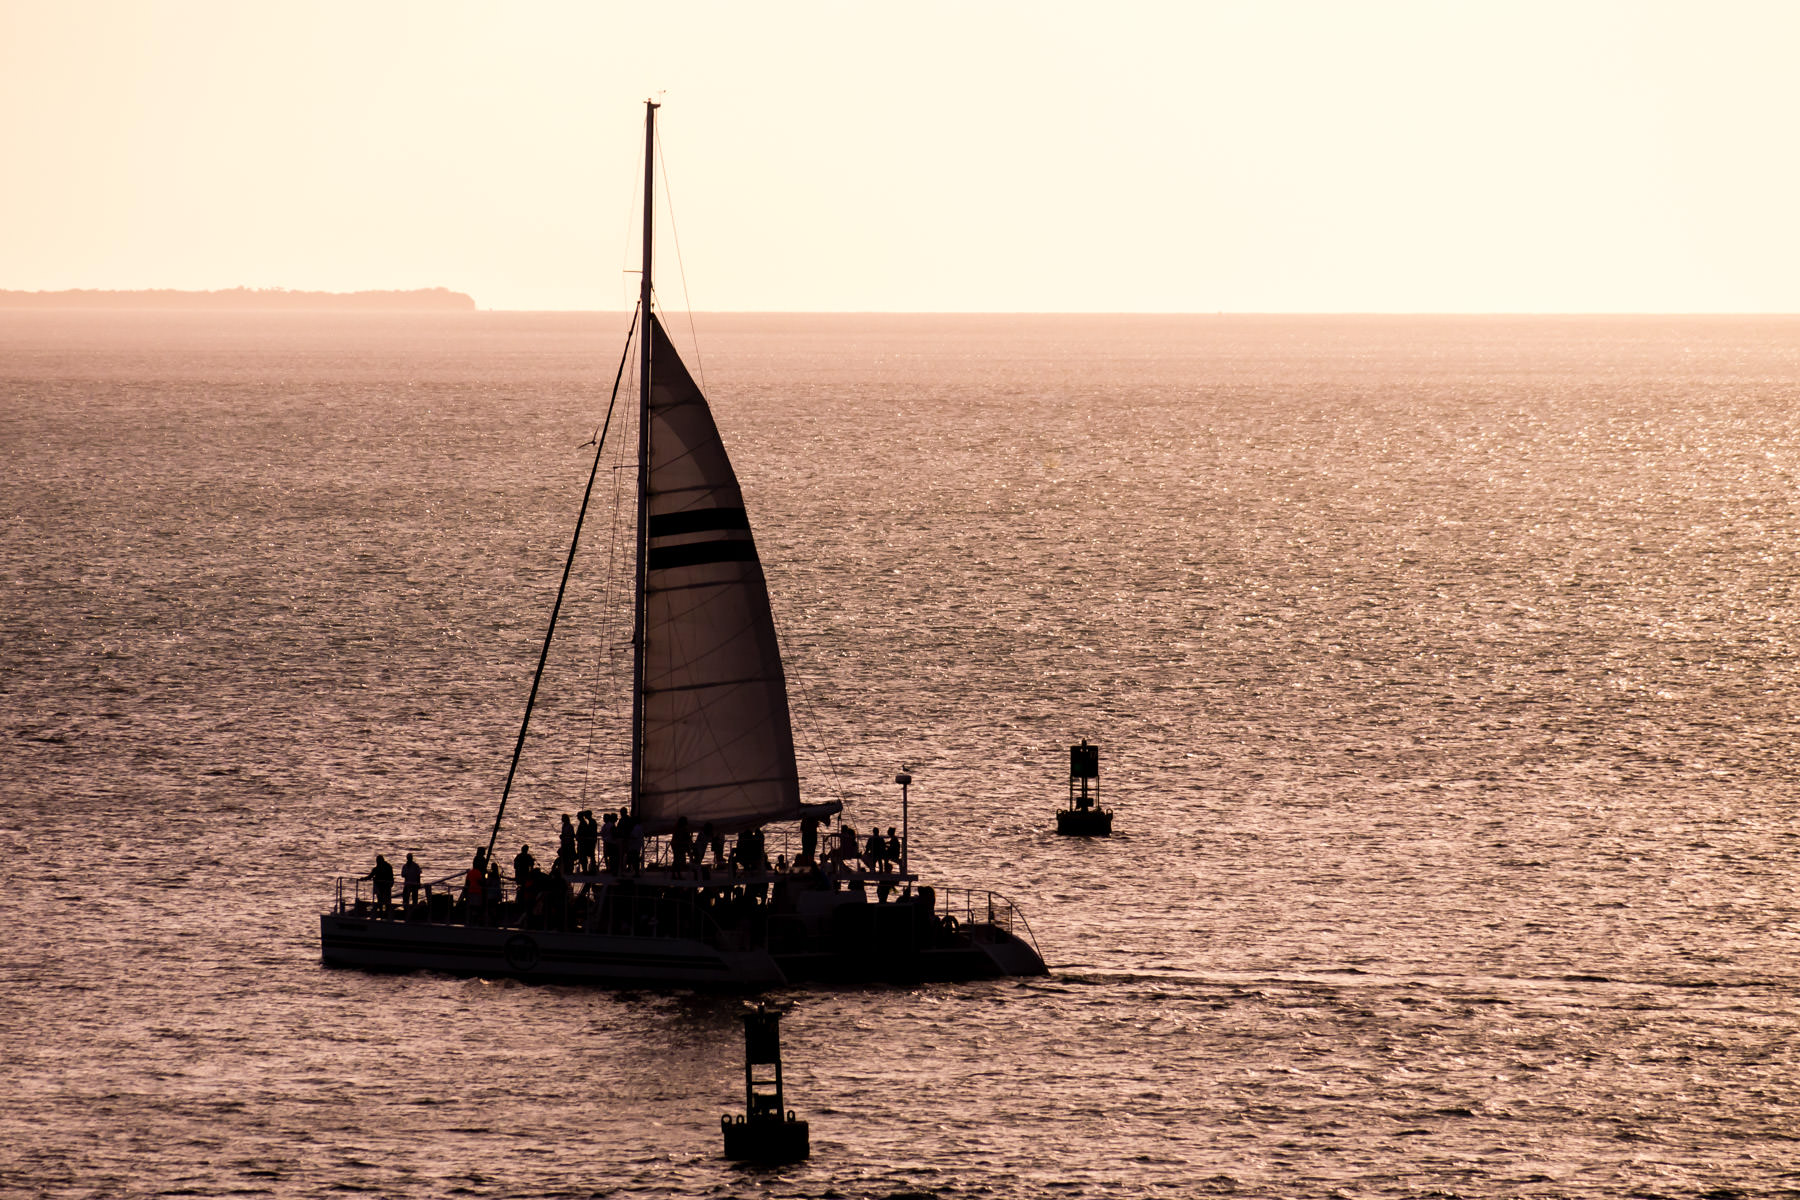 A catamaran sailboat is backlit by the late-afternoon sun just off the coast of Key West, Florida.